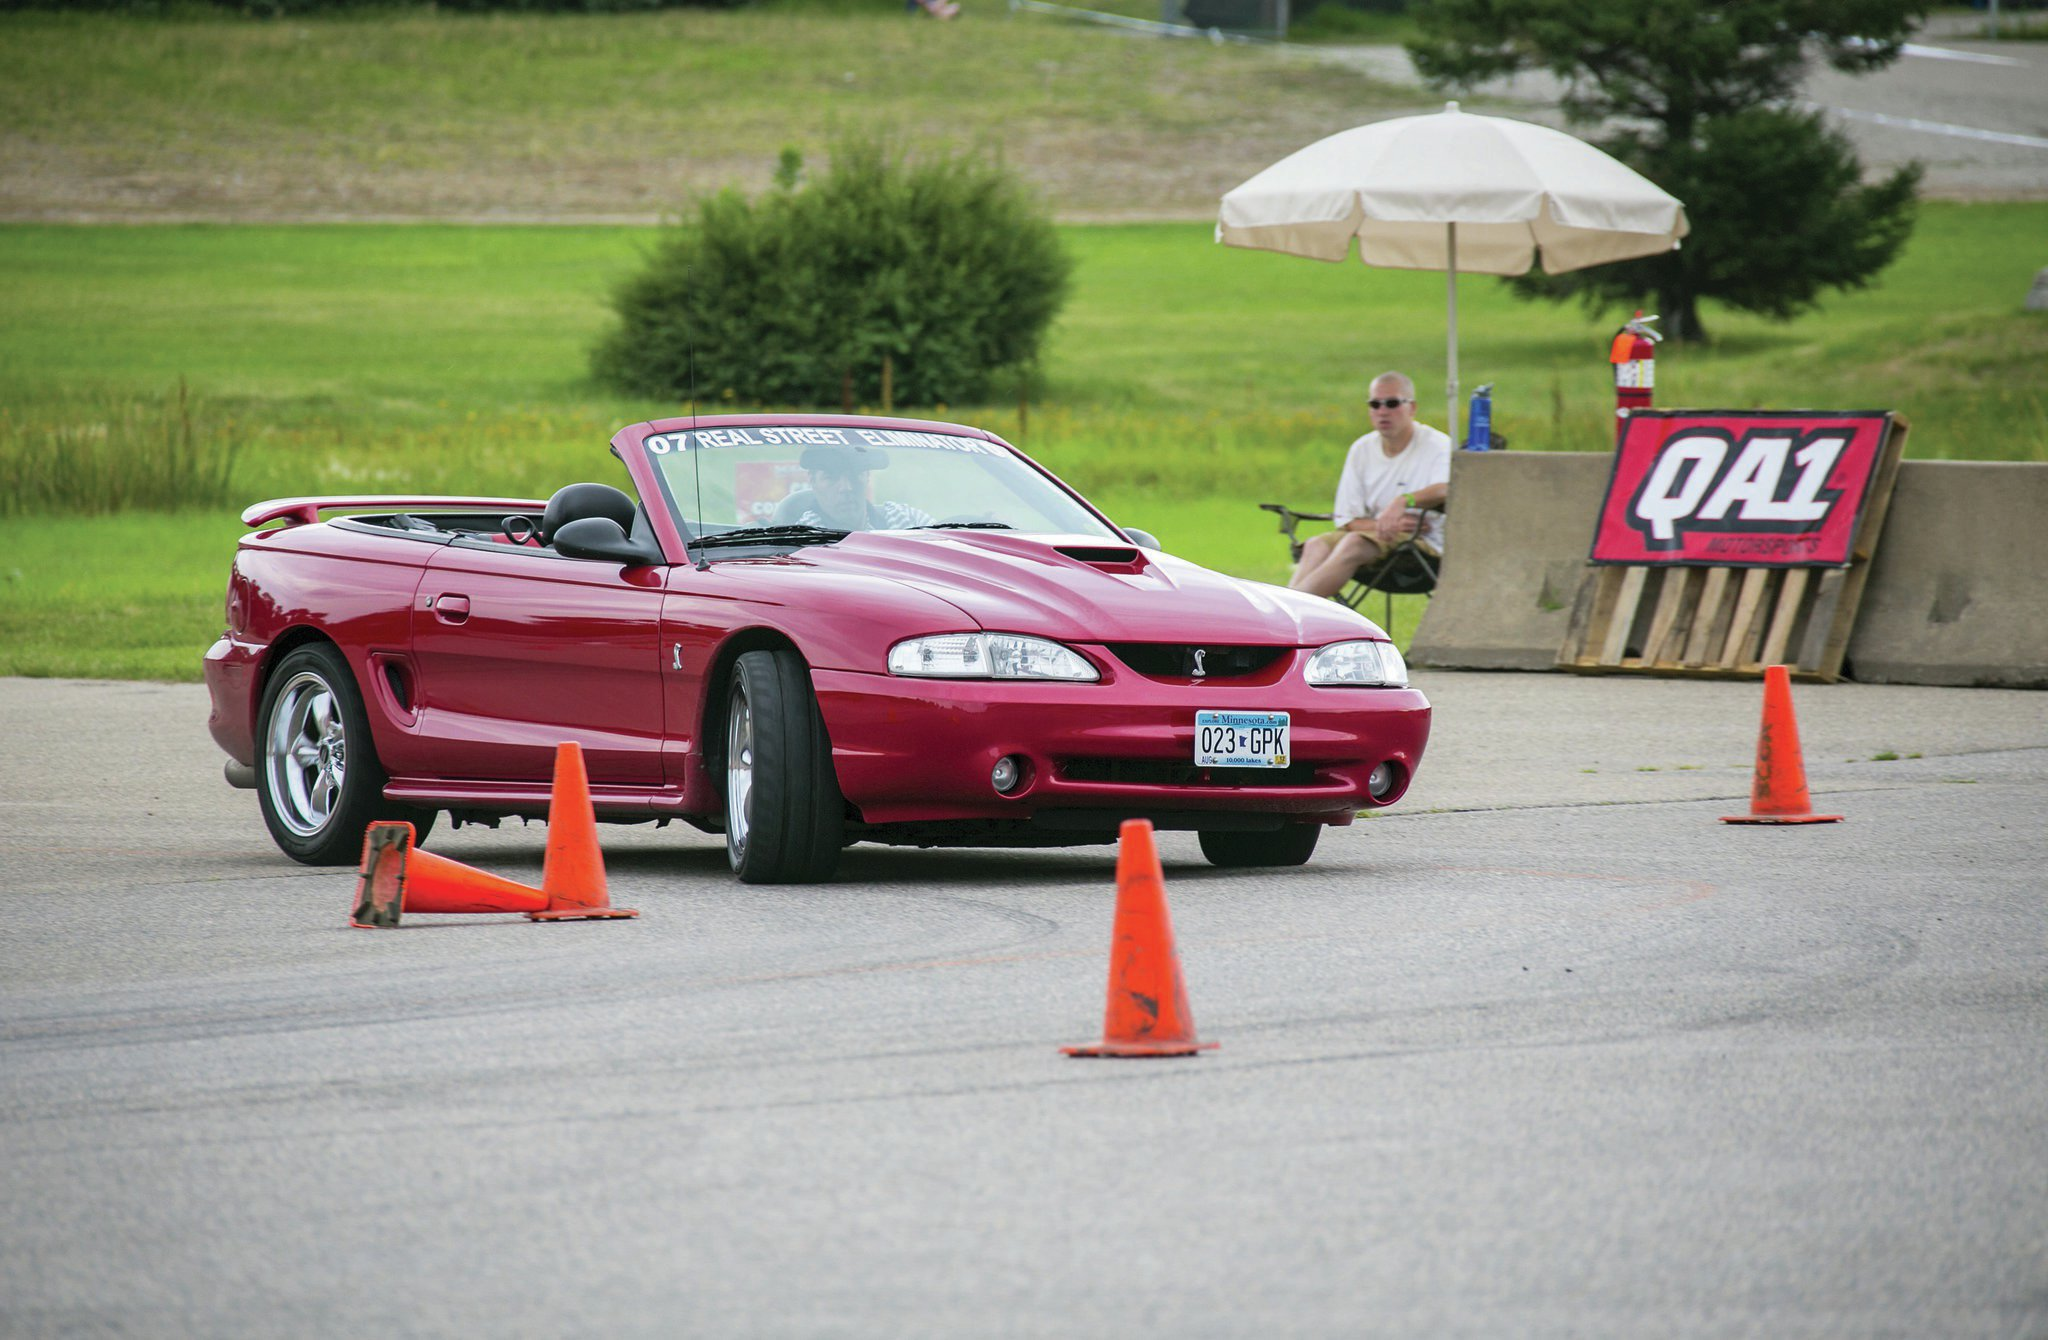 This is Brett Lindert's SN95 Mustang convertible. Over the course of several RSE events, he has steadily improved his autocross times. The 4.6L Mustang is underpowered, but this is not a disadvantage on the autocross. To prove that point, Brett won RSE's Late Model class autocross event in 2012 against a field of cars that nearly all sported more horsepower.